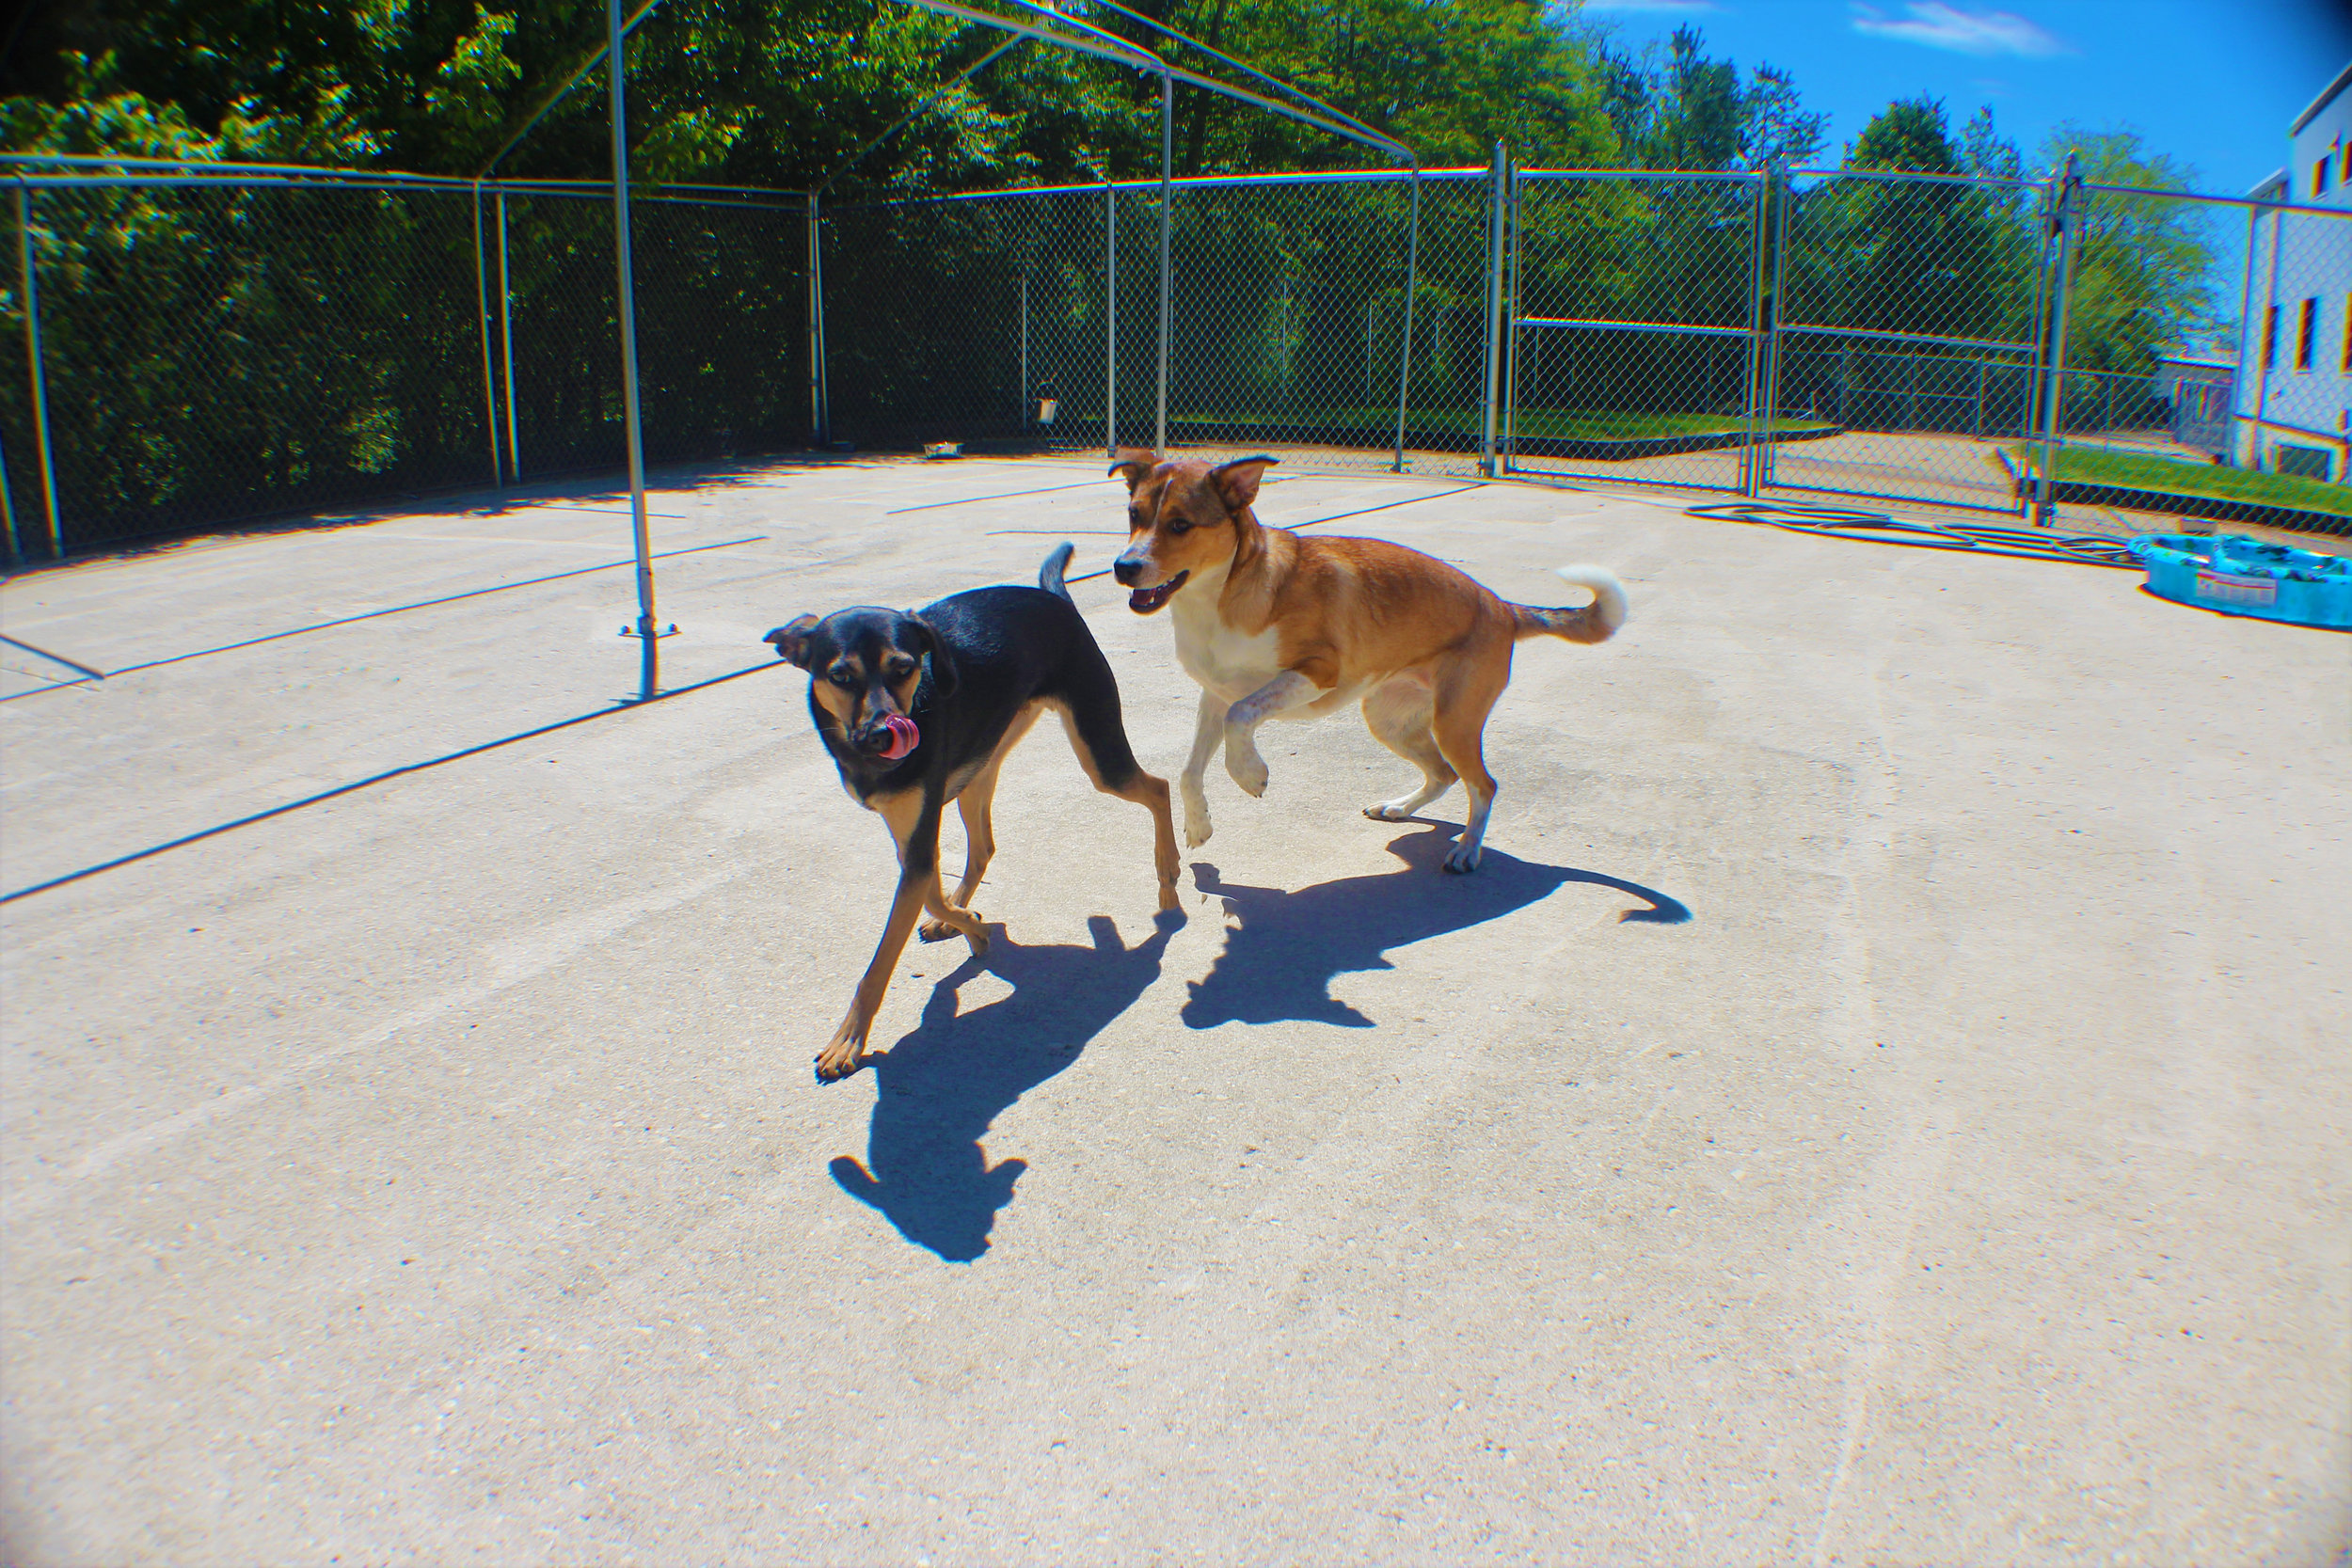 Maple is always on the move, whether it's doing the chasing or being chased she never let's the other dogs take a breath. When Maple is with our daycare dogs or boarding dogs she wears them out completely. She is really a diamond in the rough.